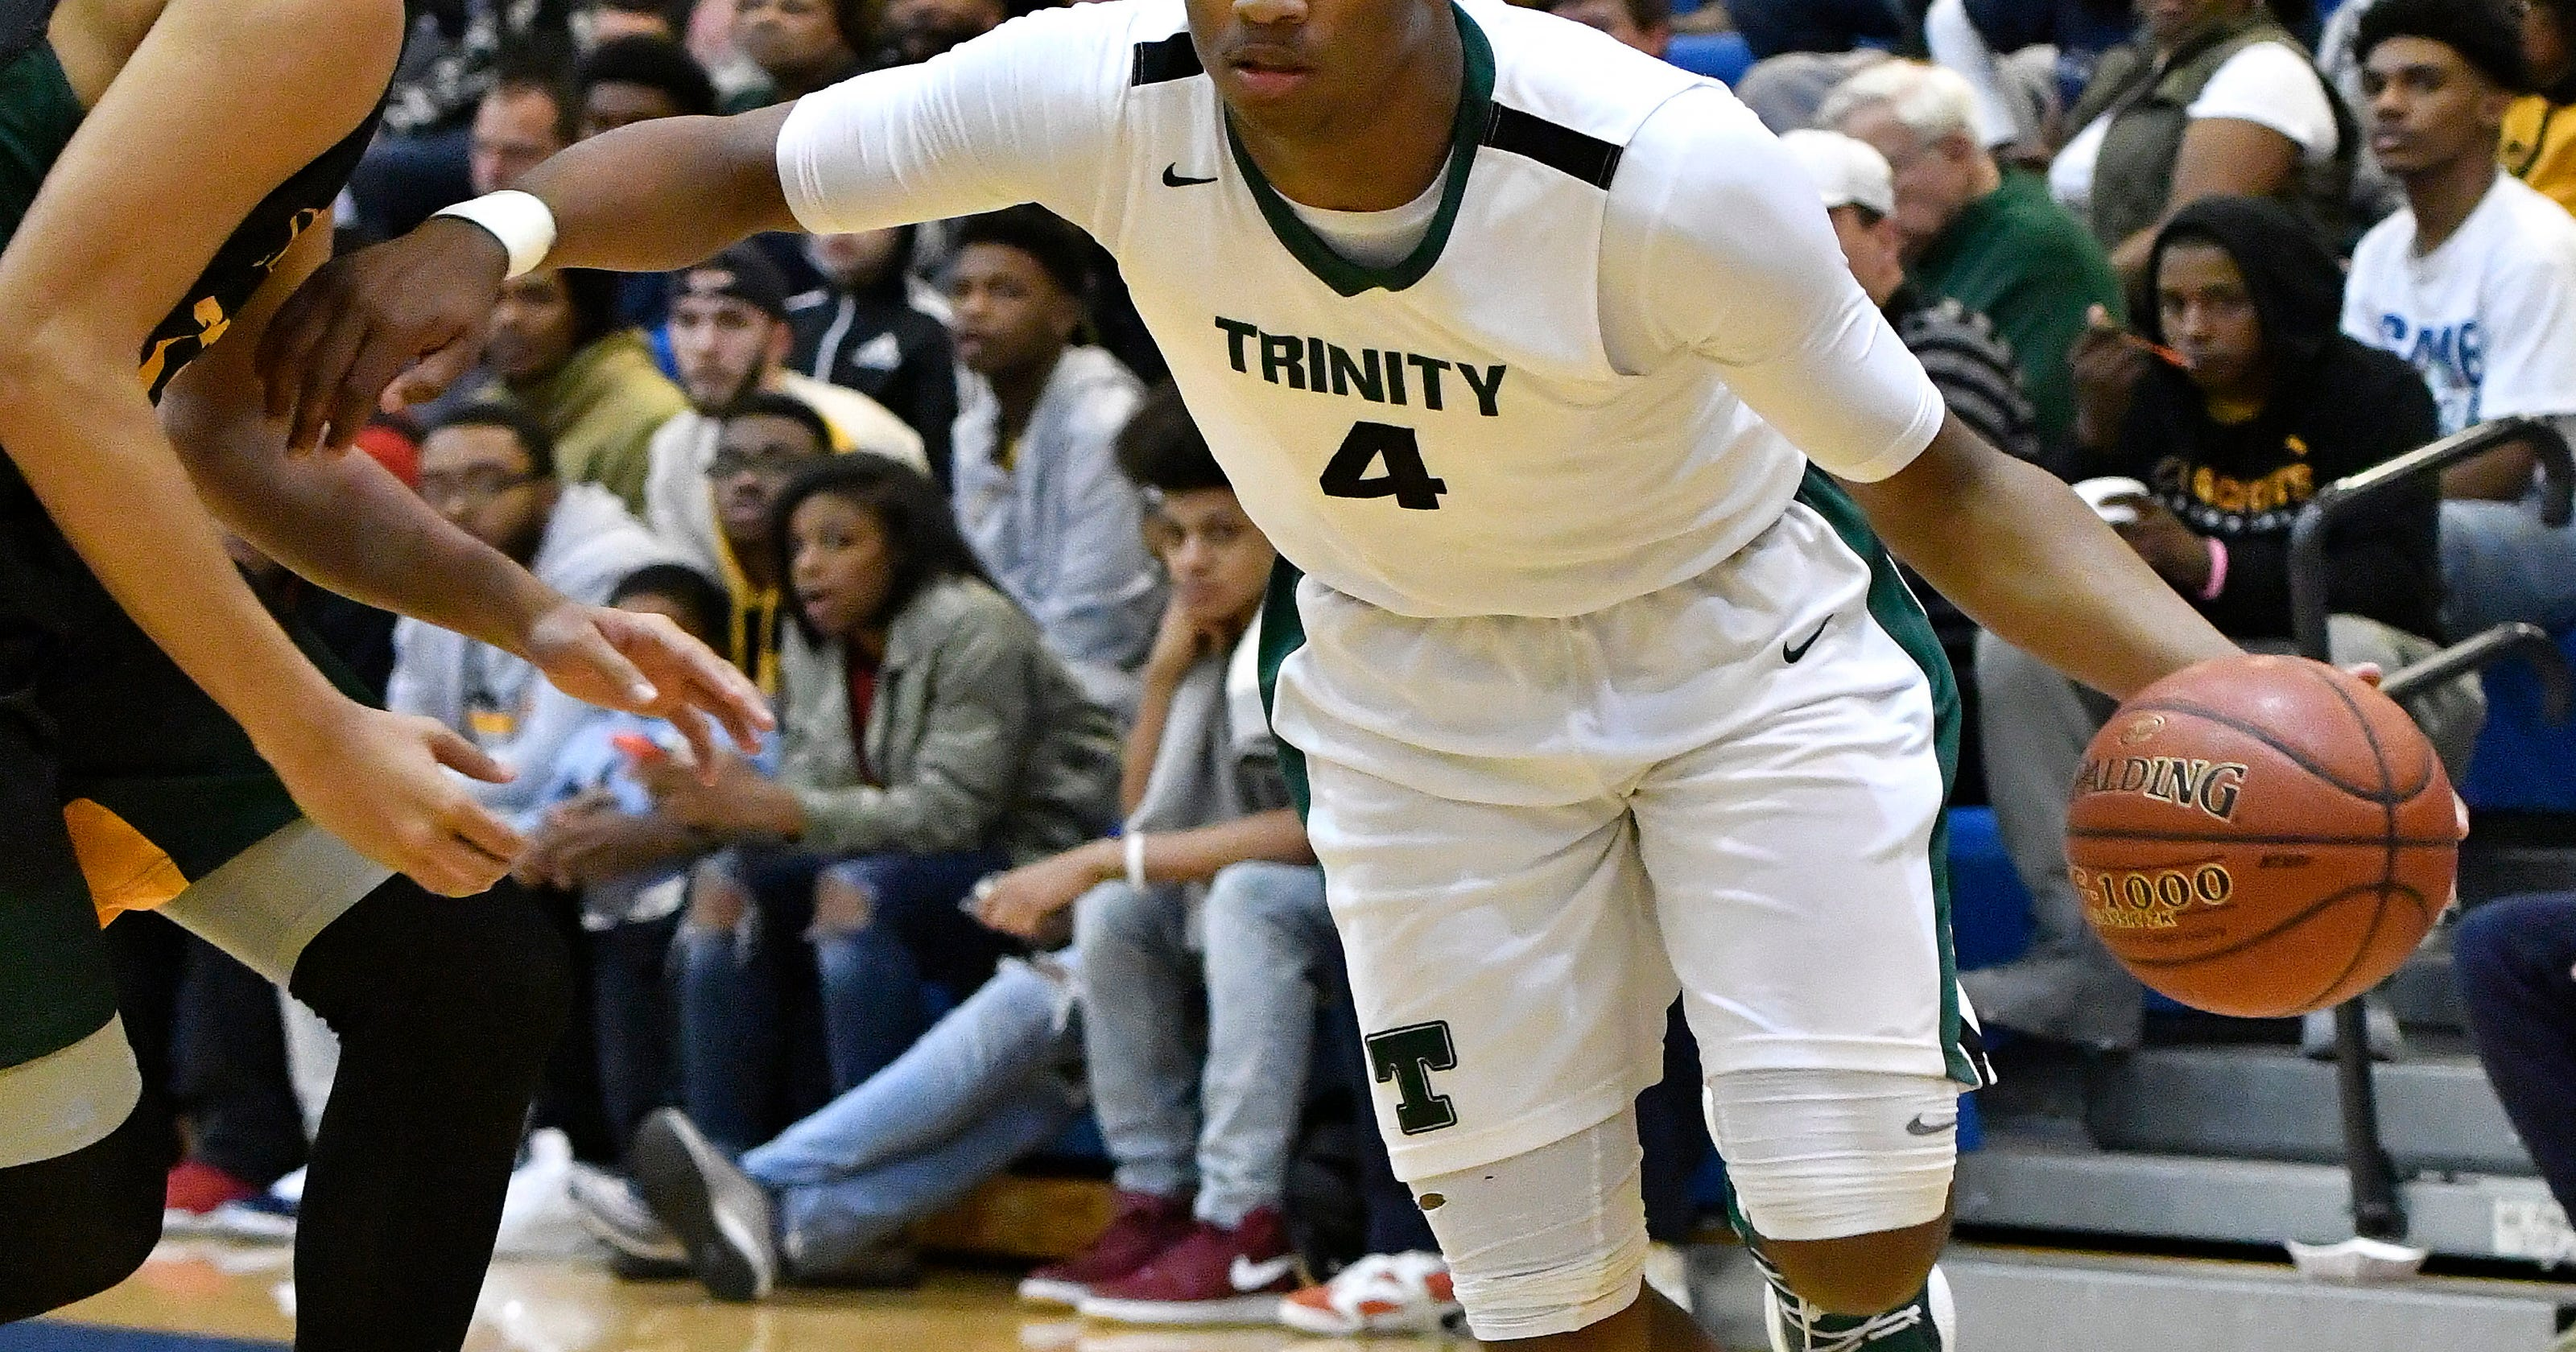 seventh region boys basketball final | no. 1 trinity vs. no. 5 ballard